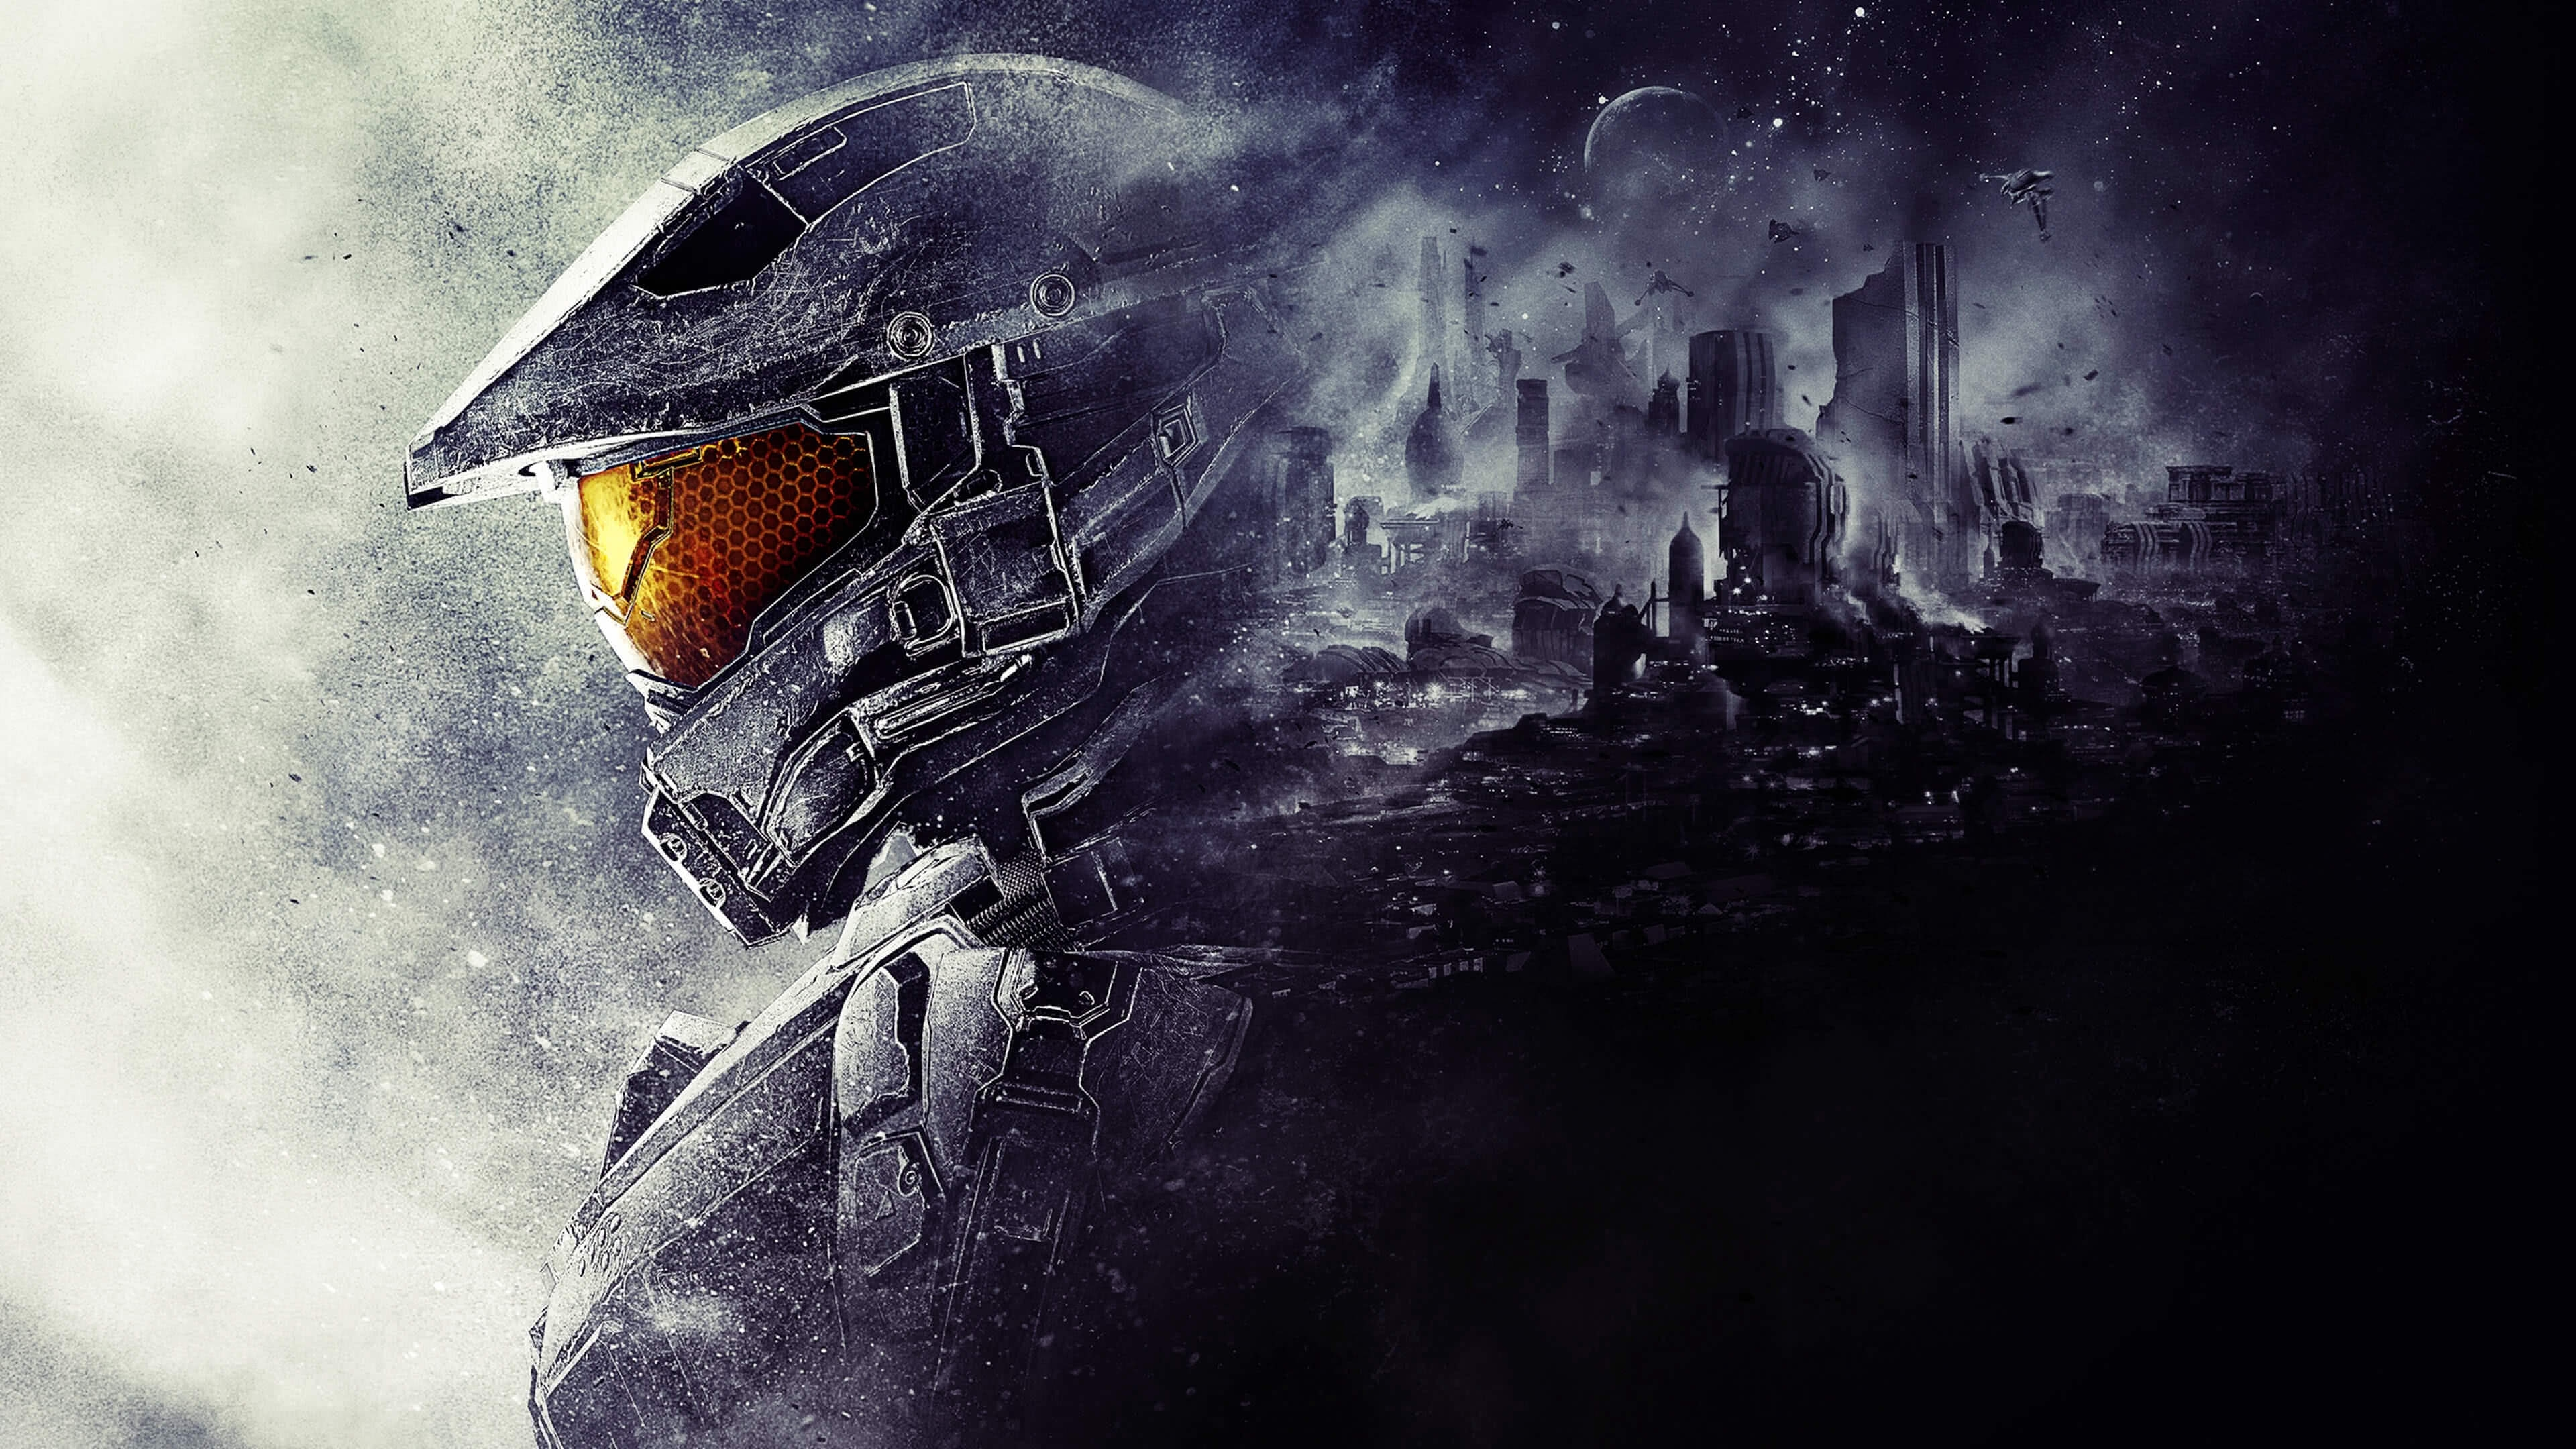 halo 5 guardians master chief helmet uhd 4k wallpaper | pixelz